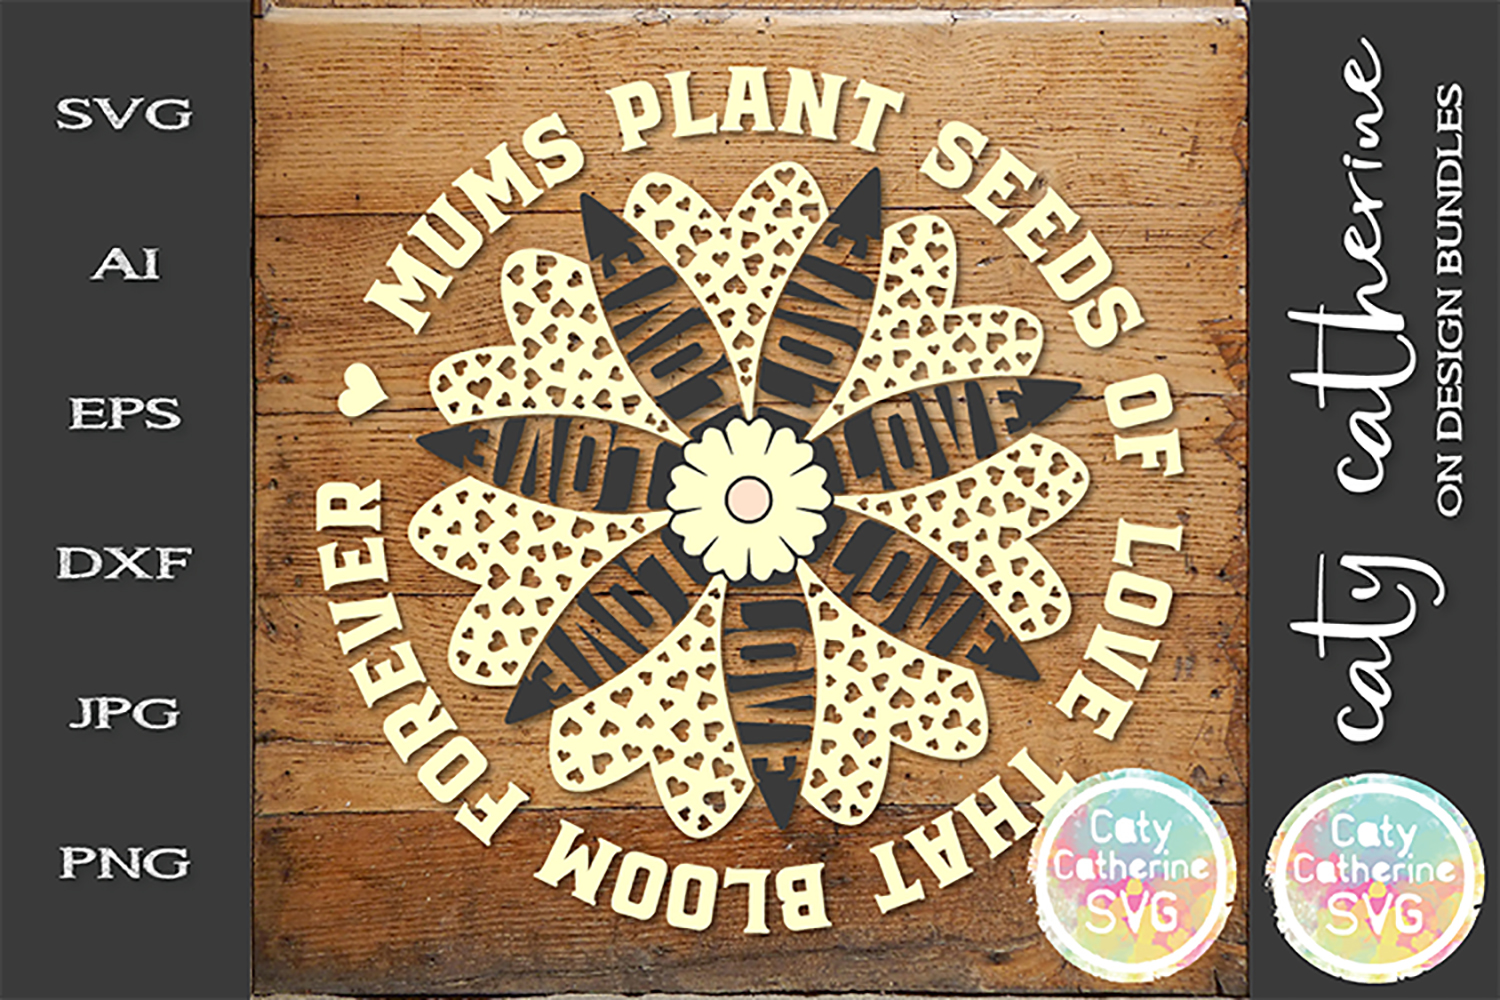 Mums Plant Seeds Of Love That Bloom Forever SVG Cut example image 1